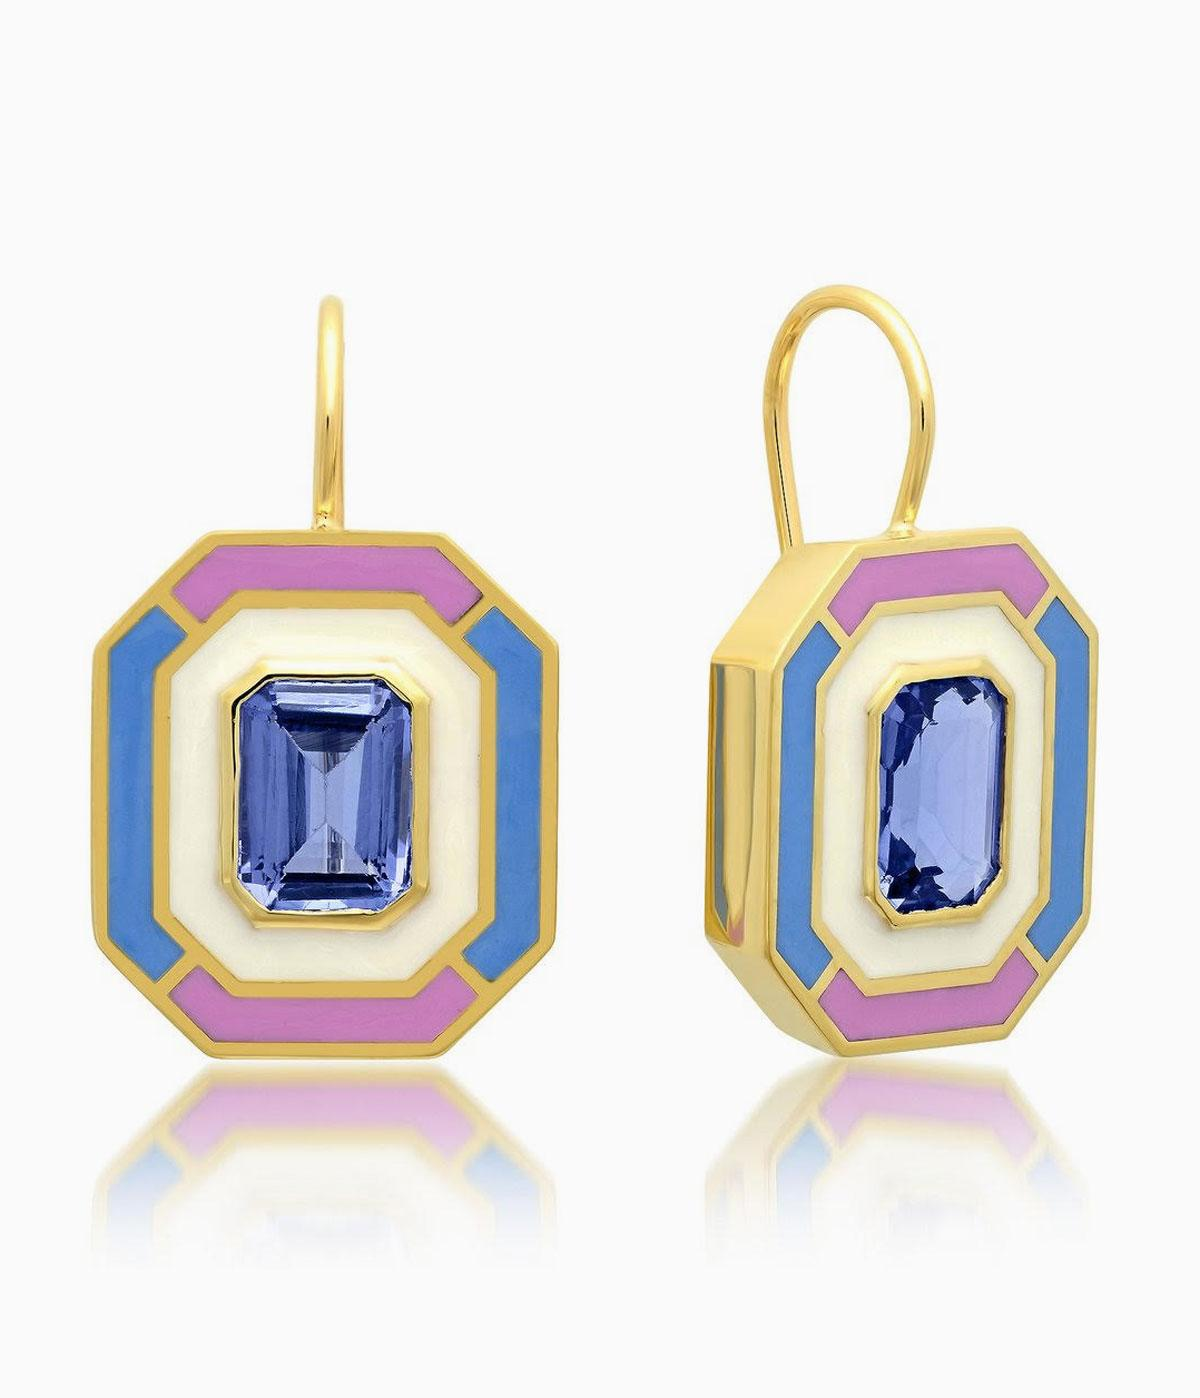 Topaz earrings with pink and blue graphic lines